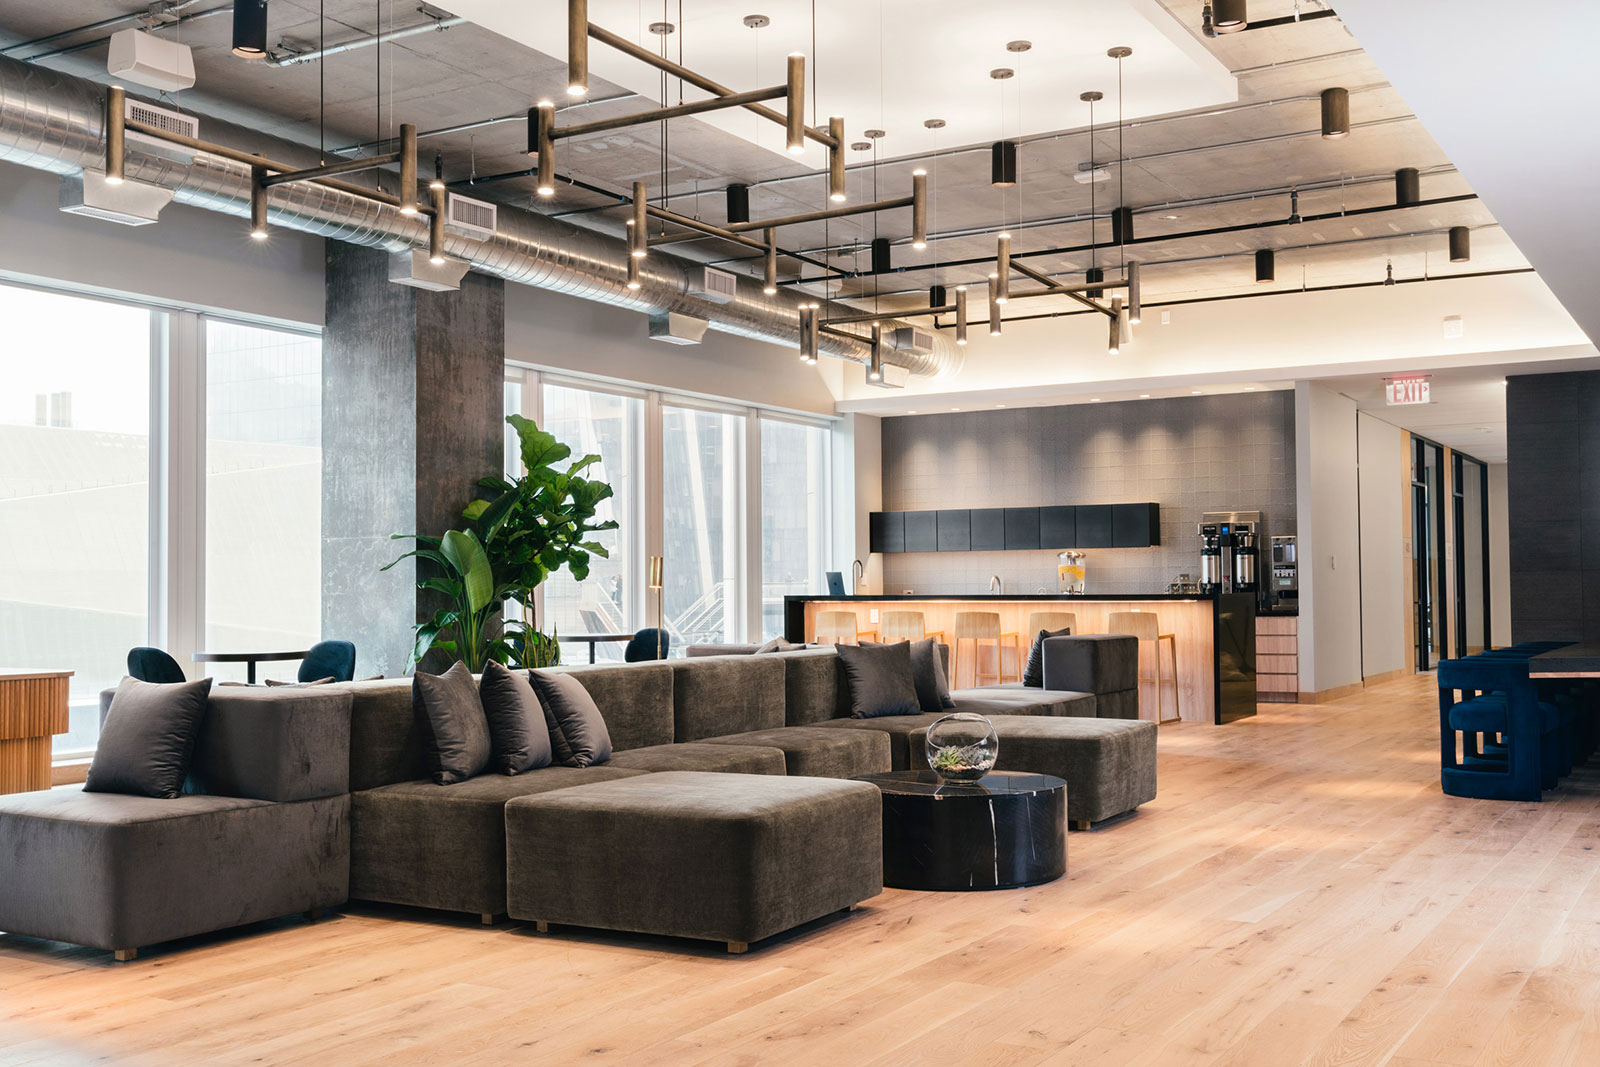 Industrious coworking space in New York's Hudson Yards